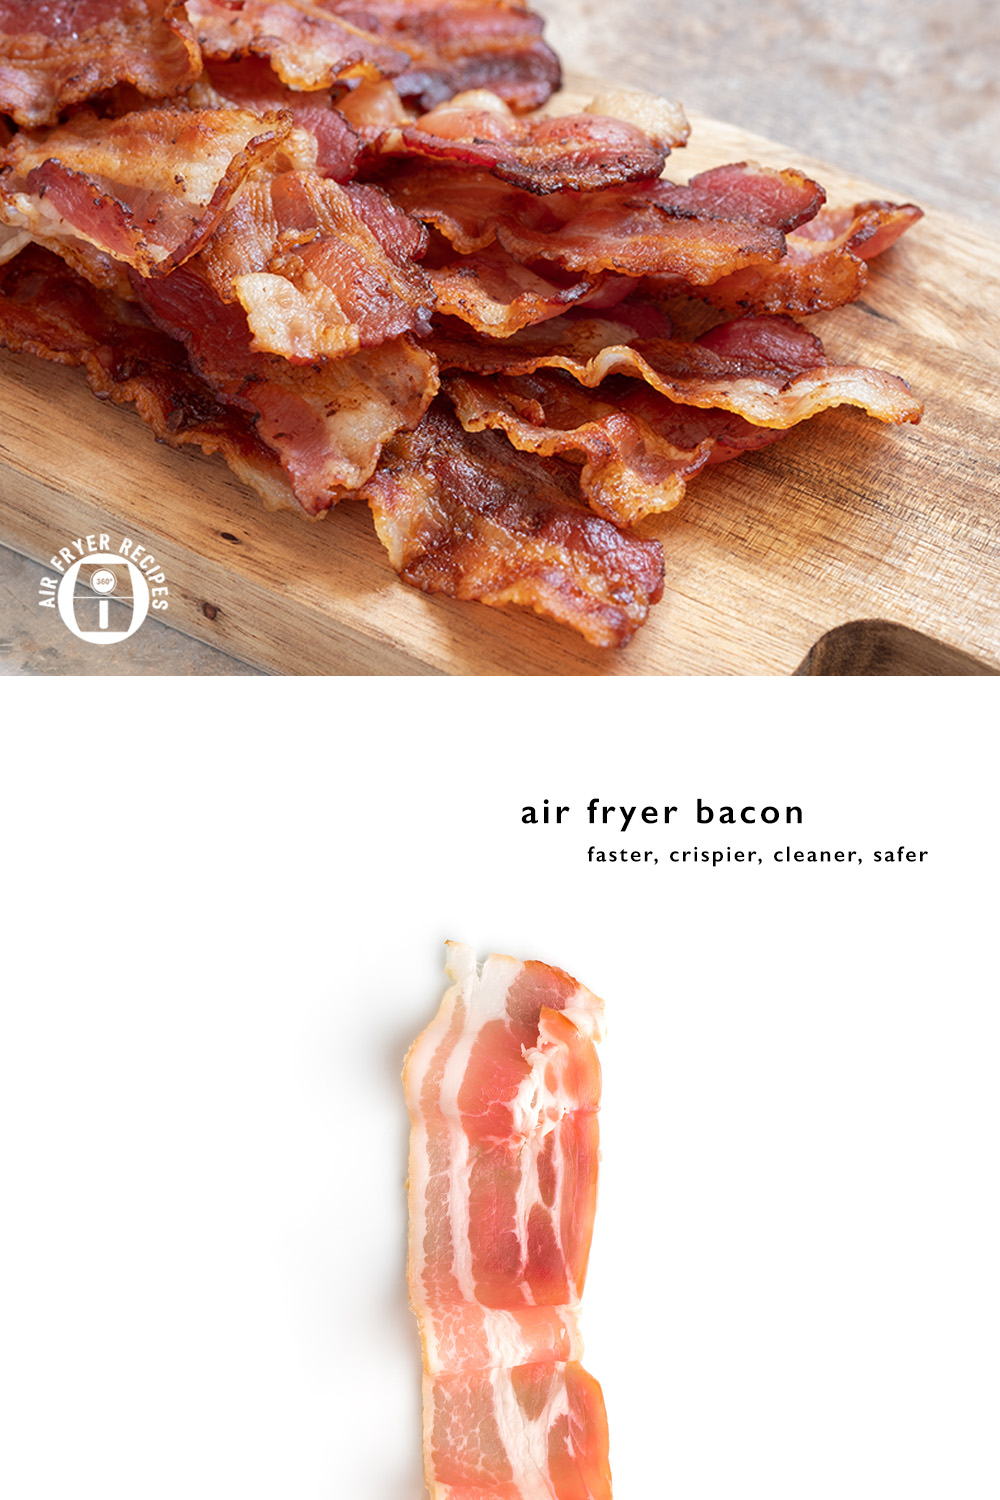 Crispy Air Fried Bacon Cooking bacon in a pan can get messy and sometimes painful when hot oil splashes on your hands or arms. An air fryer helps to cut down on the mess and keeps it crispier than a microwave. #bacon #howtocookbacon #airfriedbacon #airfryer #airfried #breakfastbacon